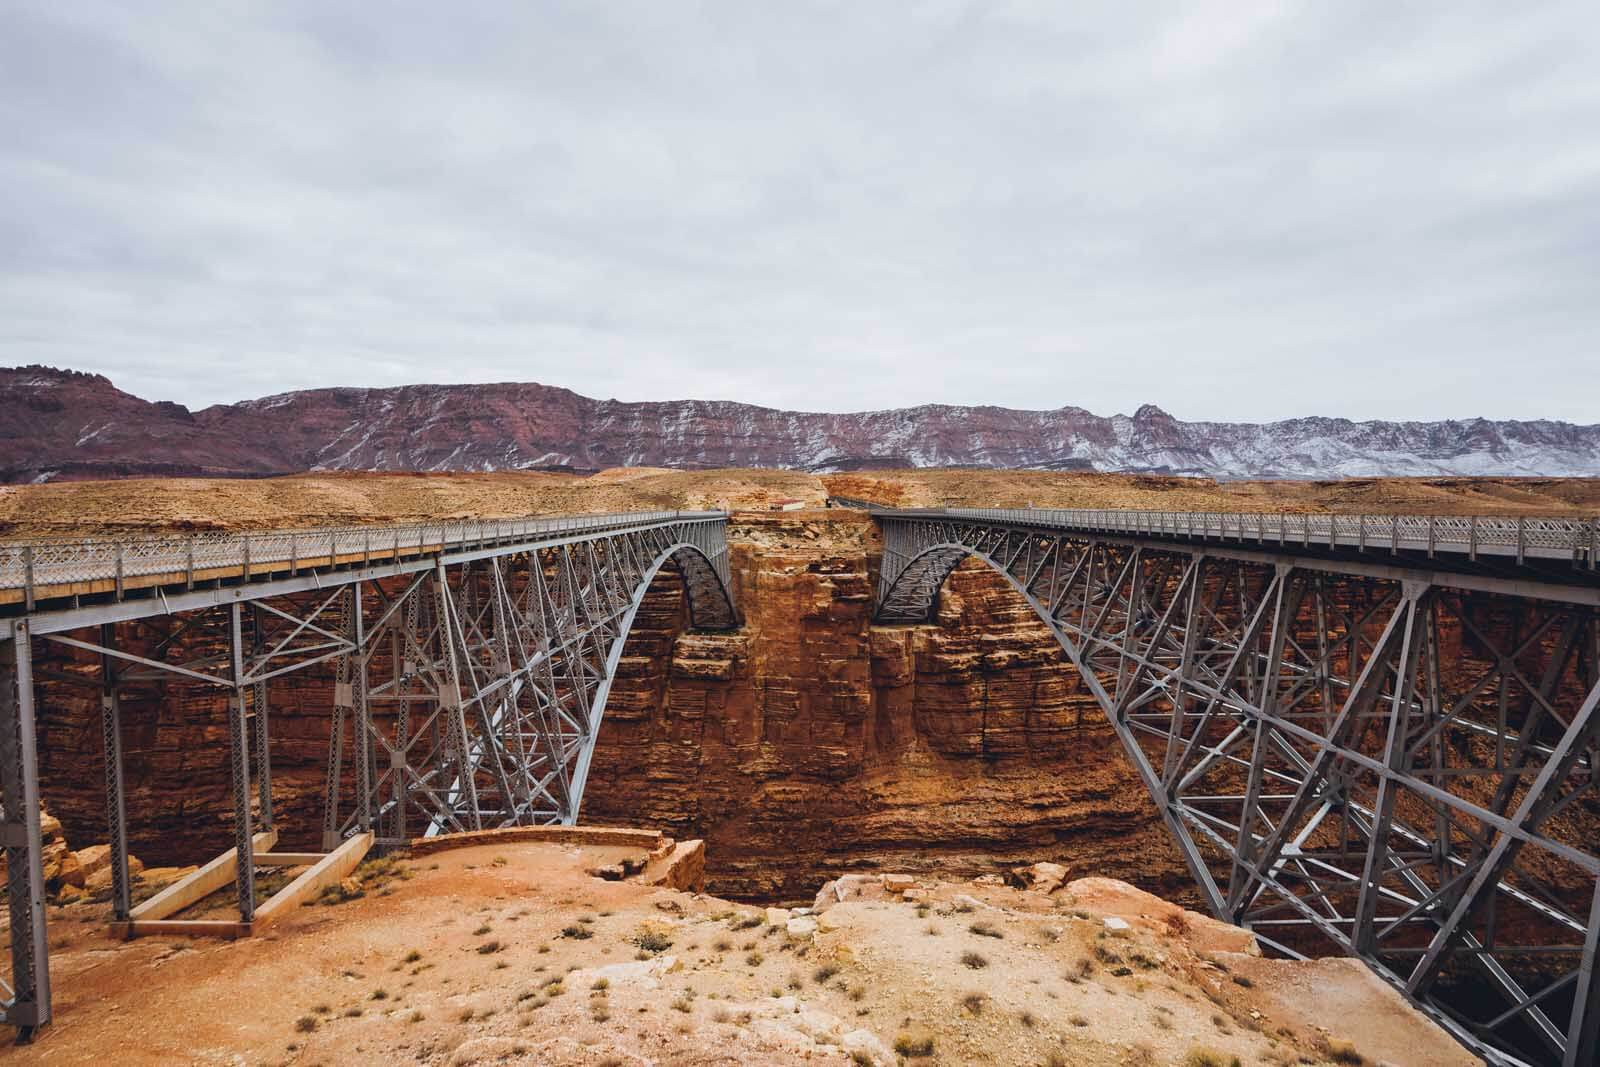 The double Navajo Bridge